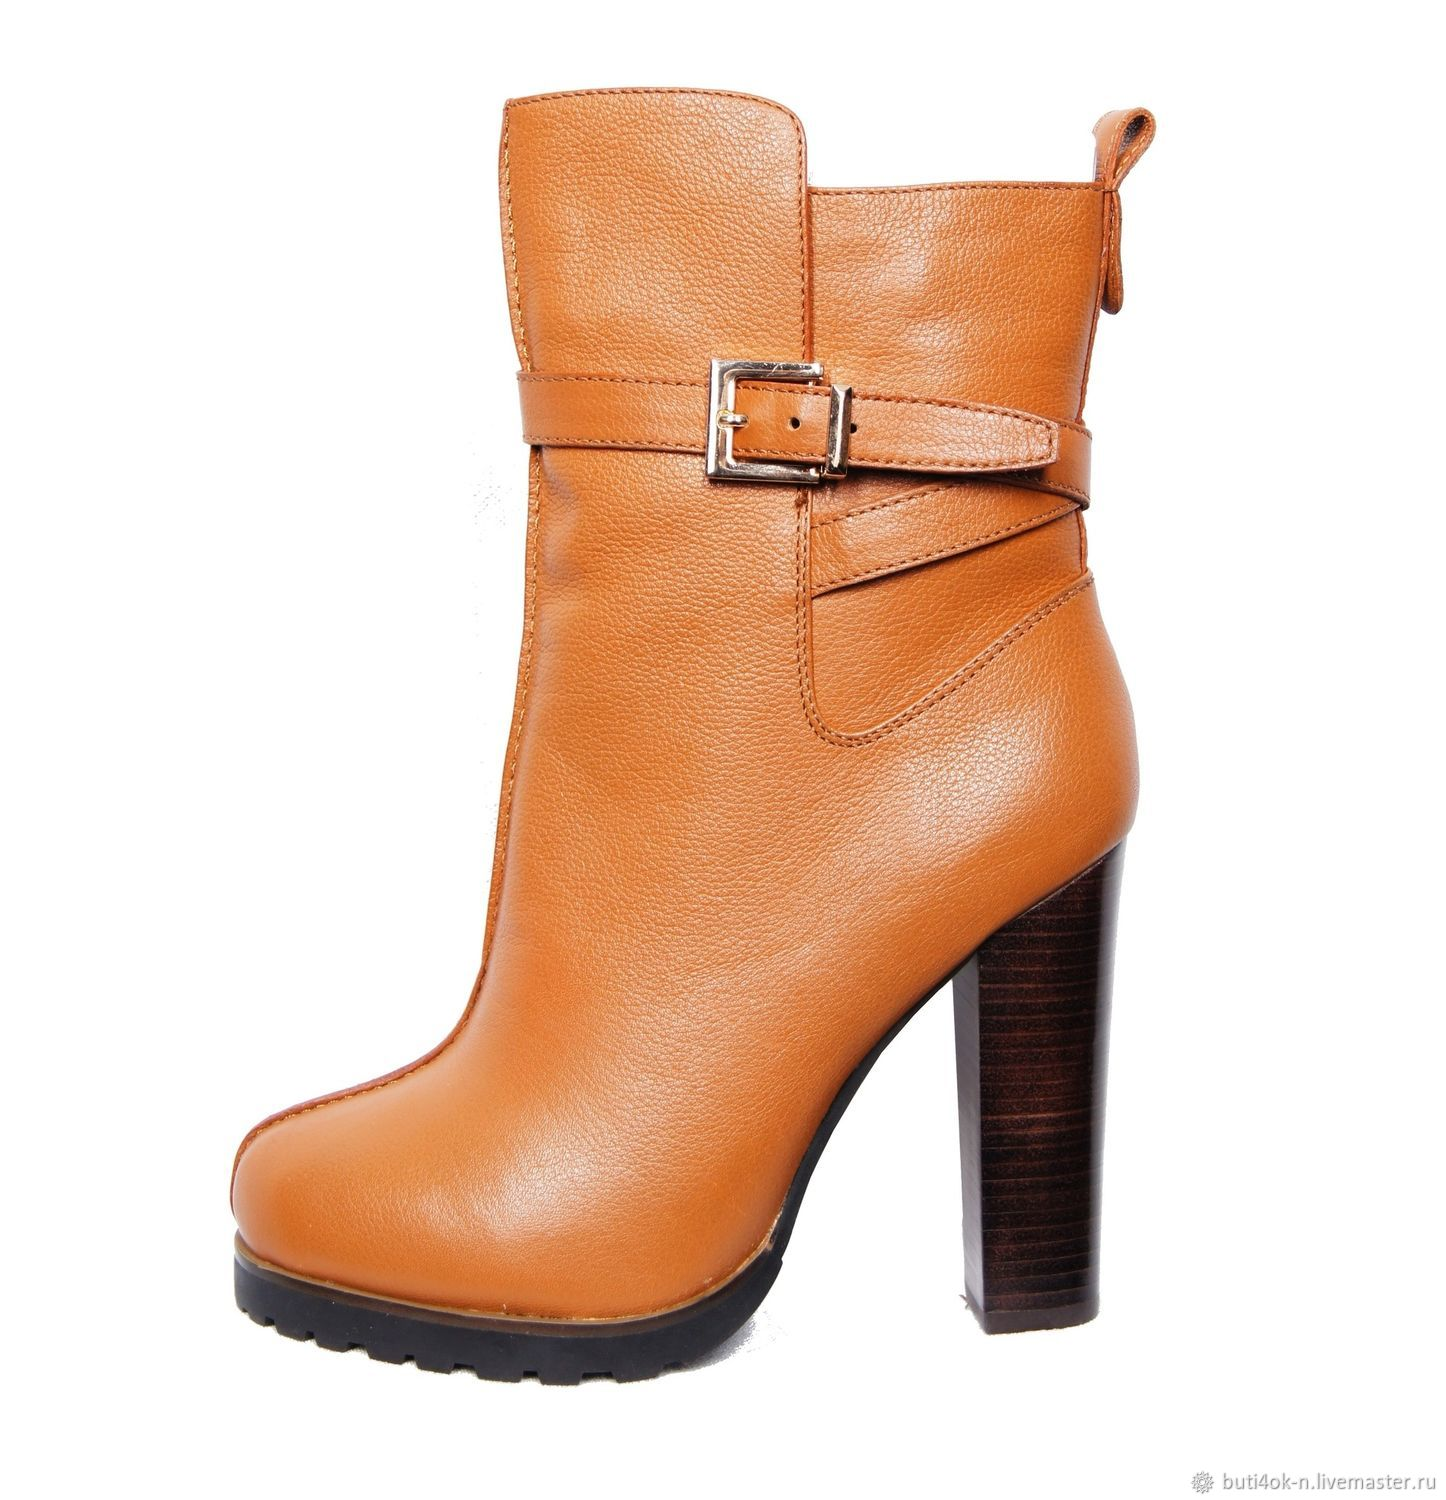 Size 38, 39. Light brown winter boots from nature.skins, High Boots, Nelidovo,  Фото №1